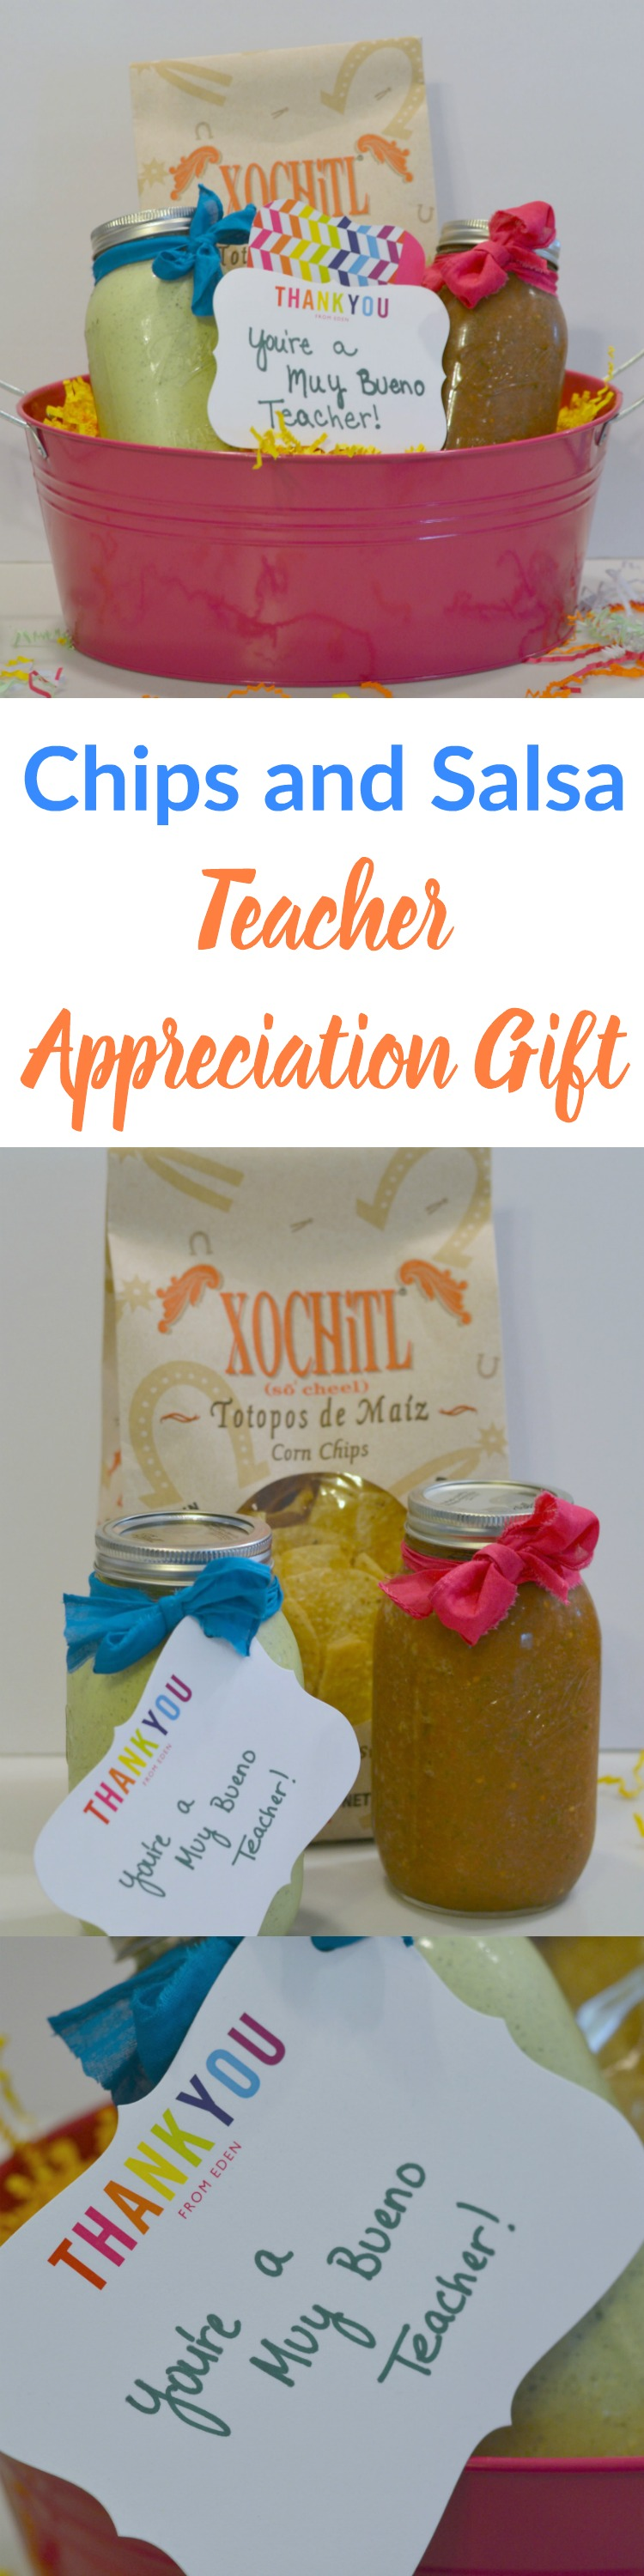 Chips and salsa teacher appreciation gift appreciation gifts chips and salsa teacher appreciation gift pinterest solutioingenieria Choice Image